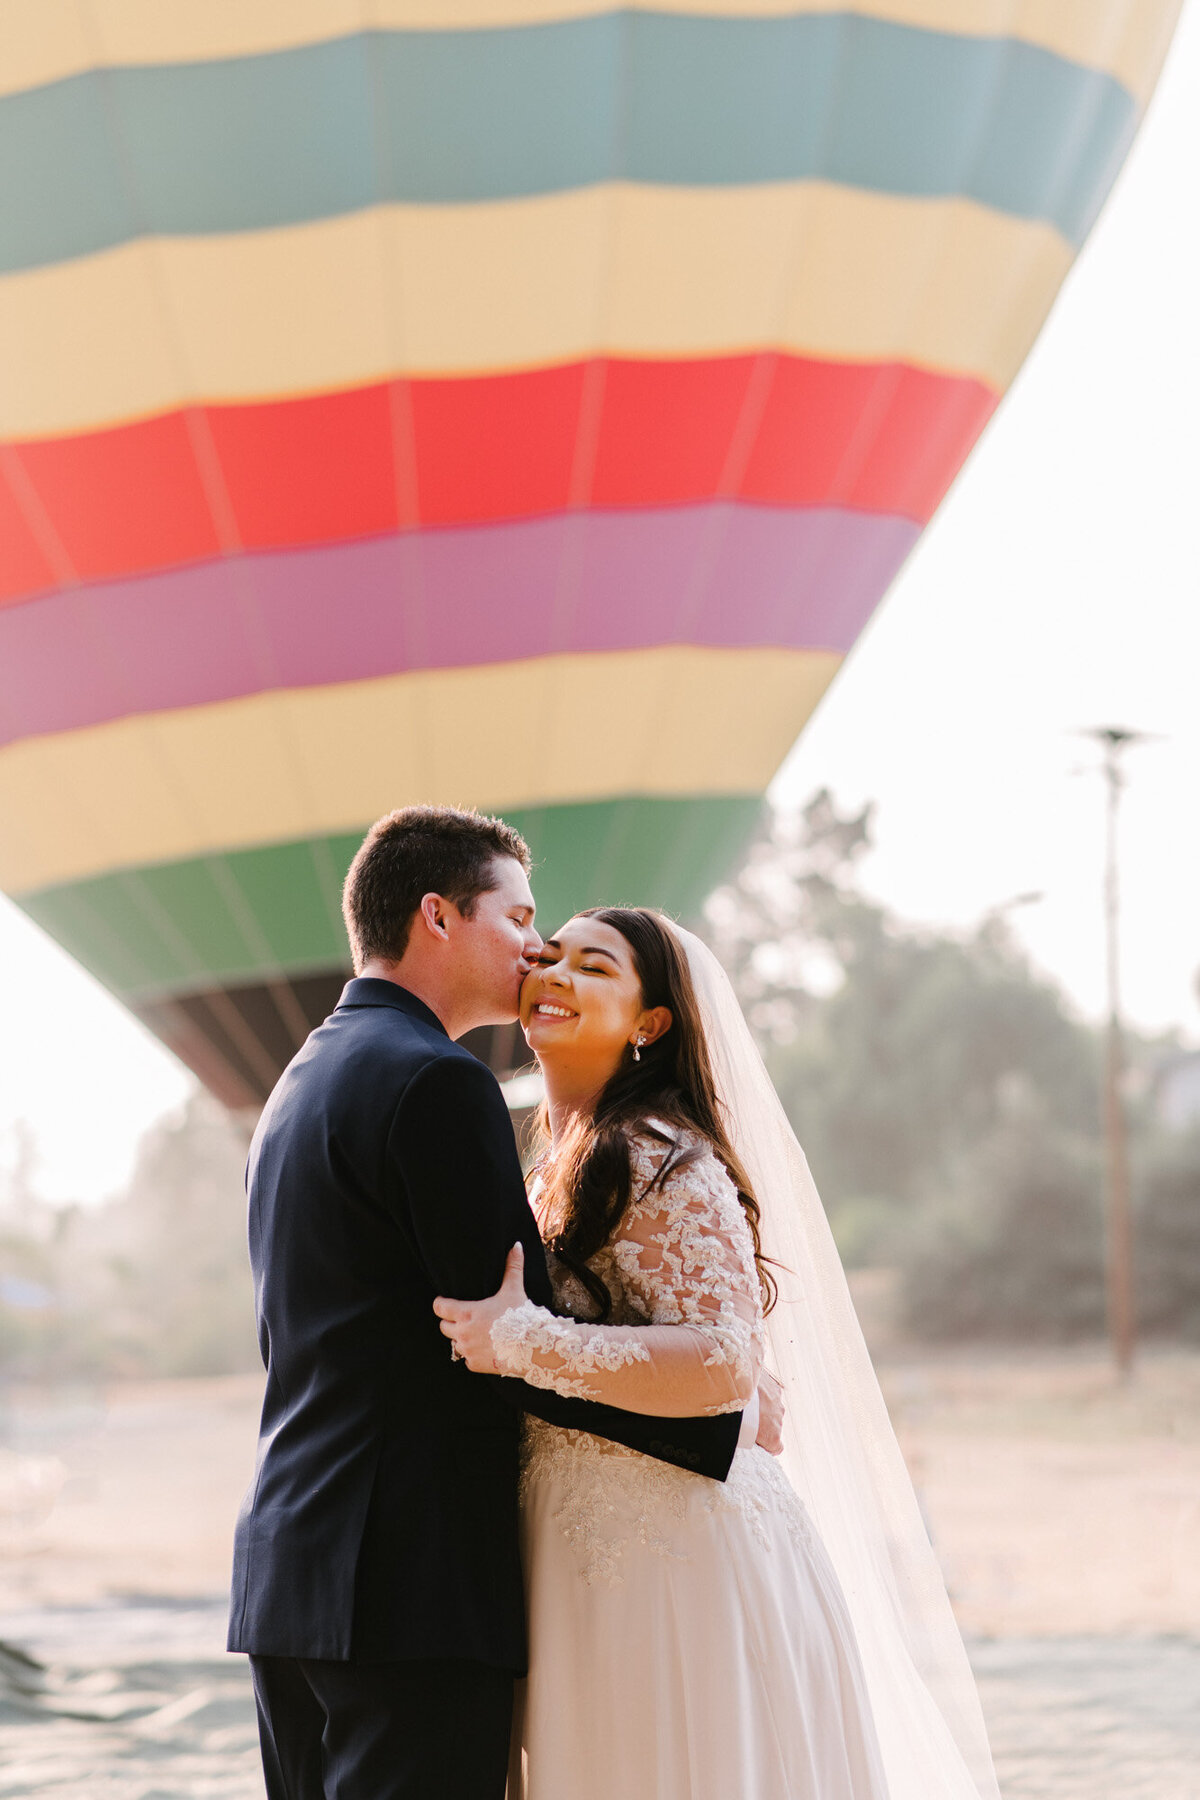 Hot Air Balloon Elopement Marie Monforte Photography-106